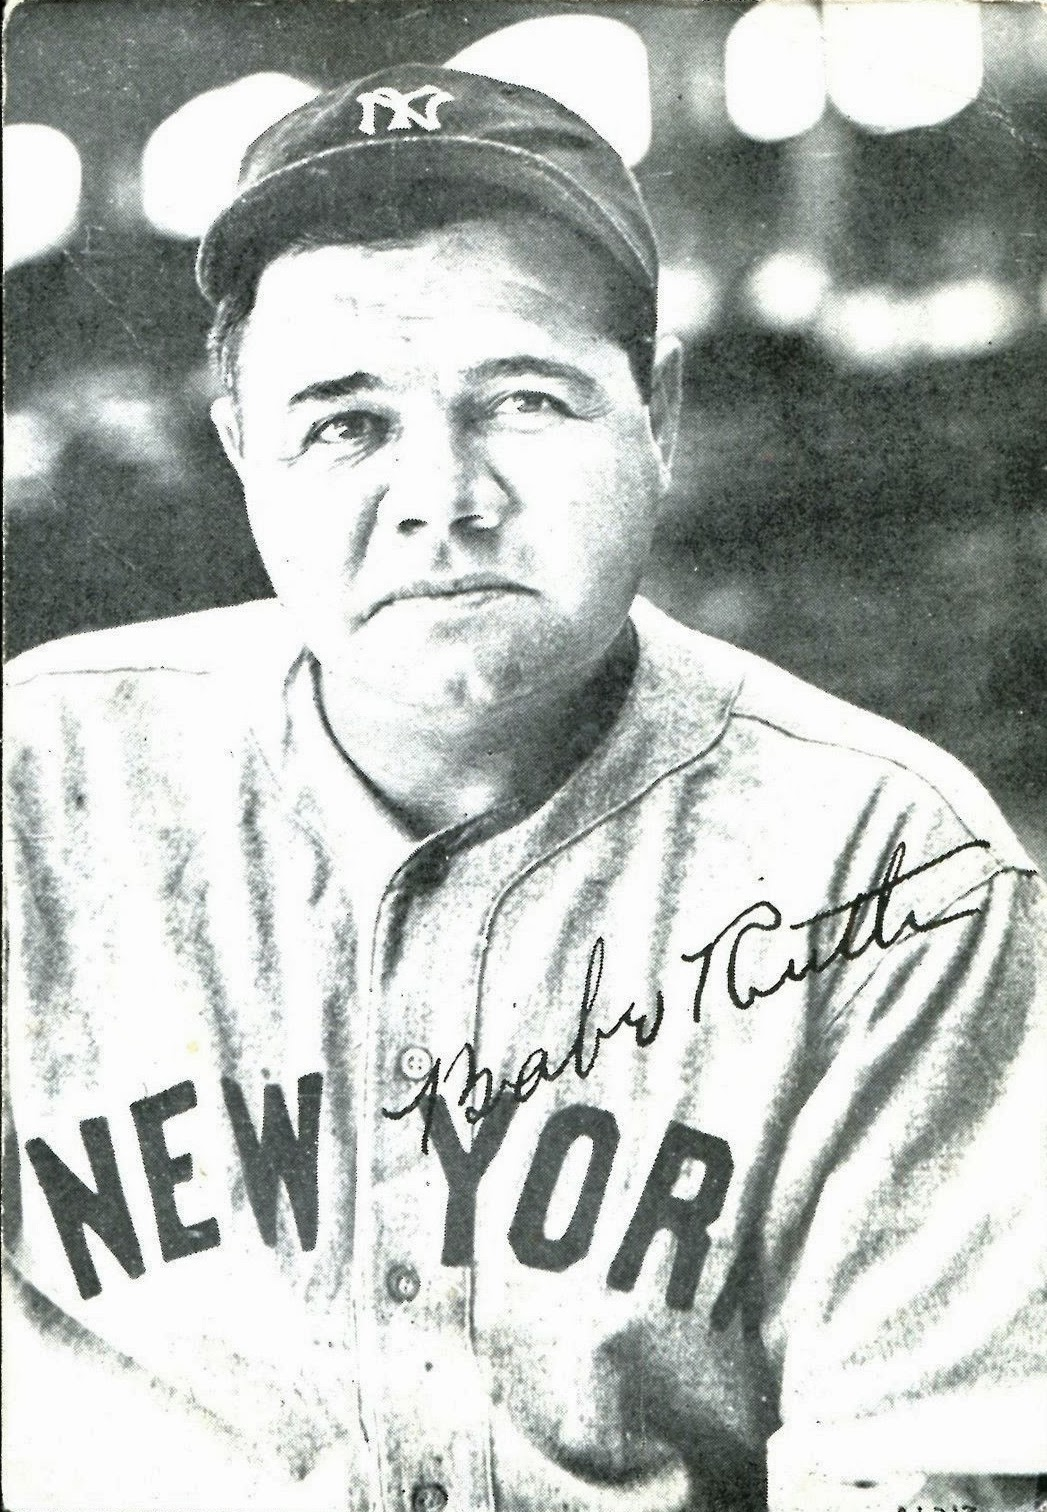 How many home runs did babe ruth hit in 1925-3344